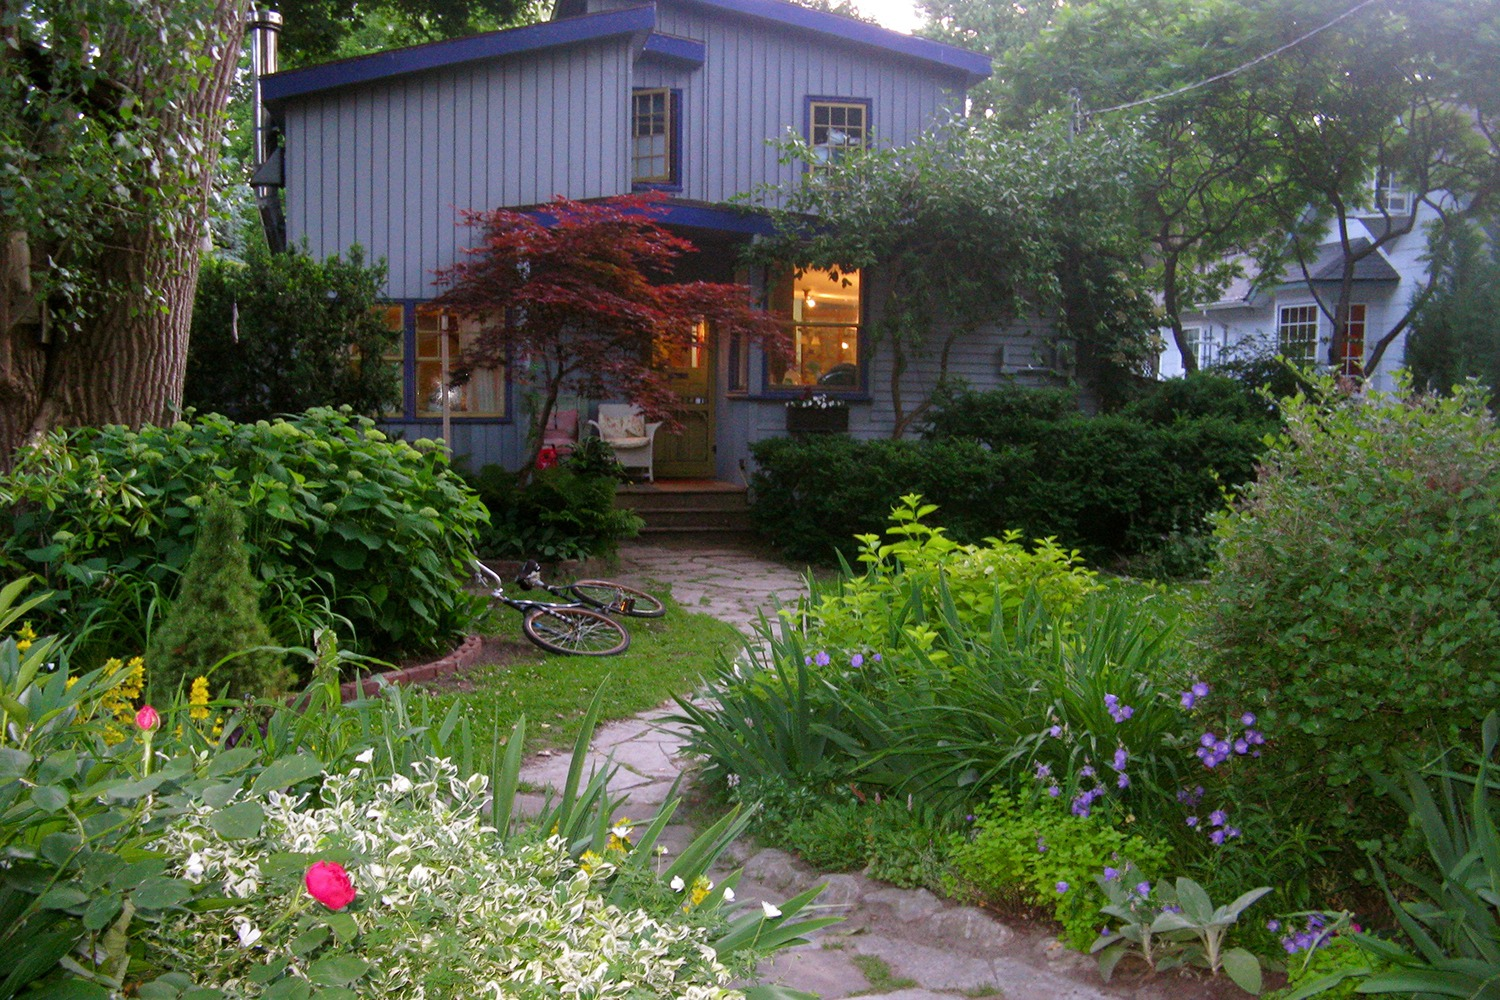 Linda Rosenbaum's house on Toronto Island. (Photo credit Linda Rosenbaum)